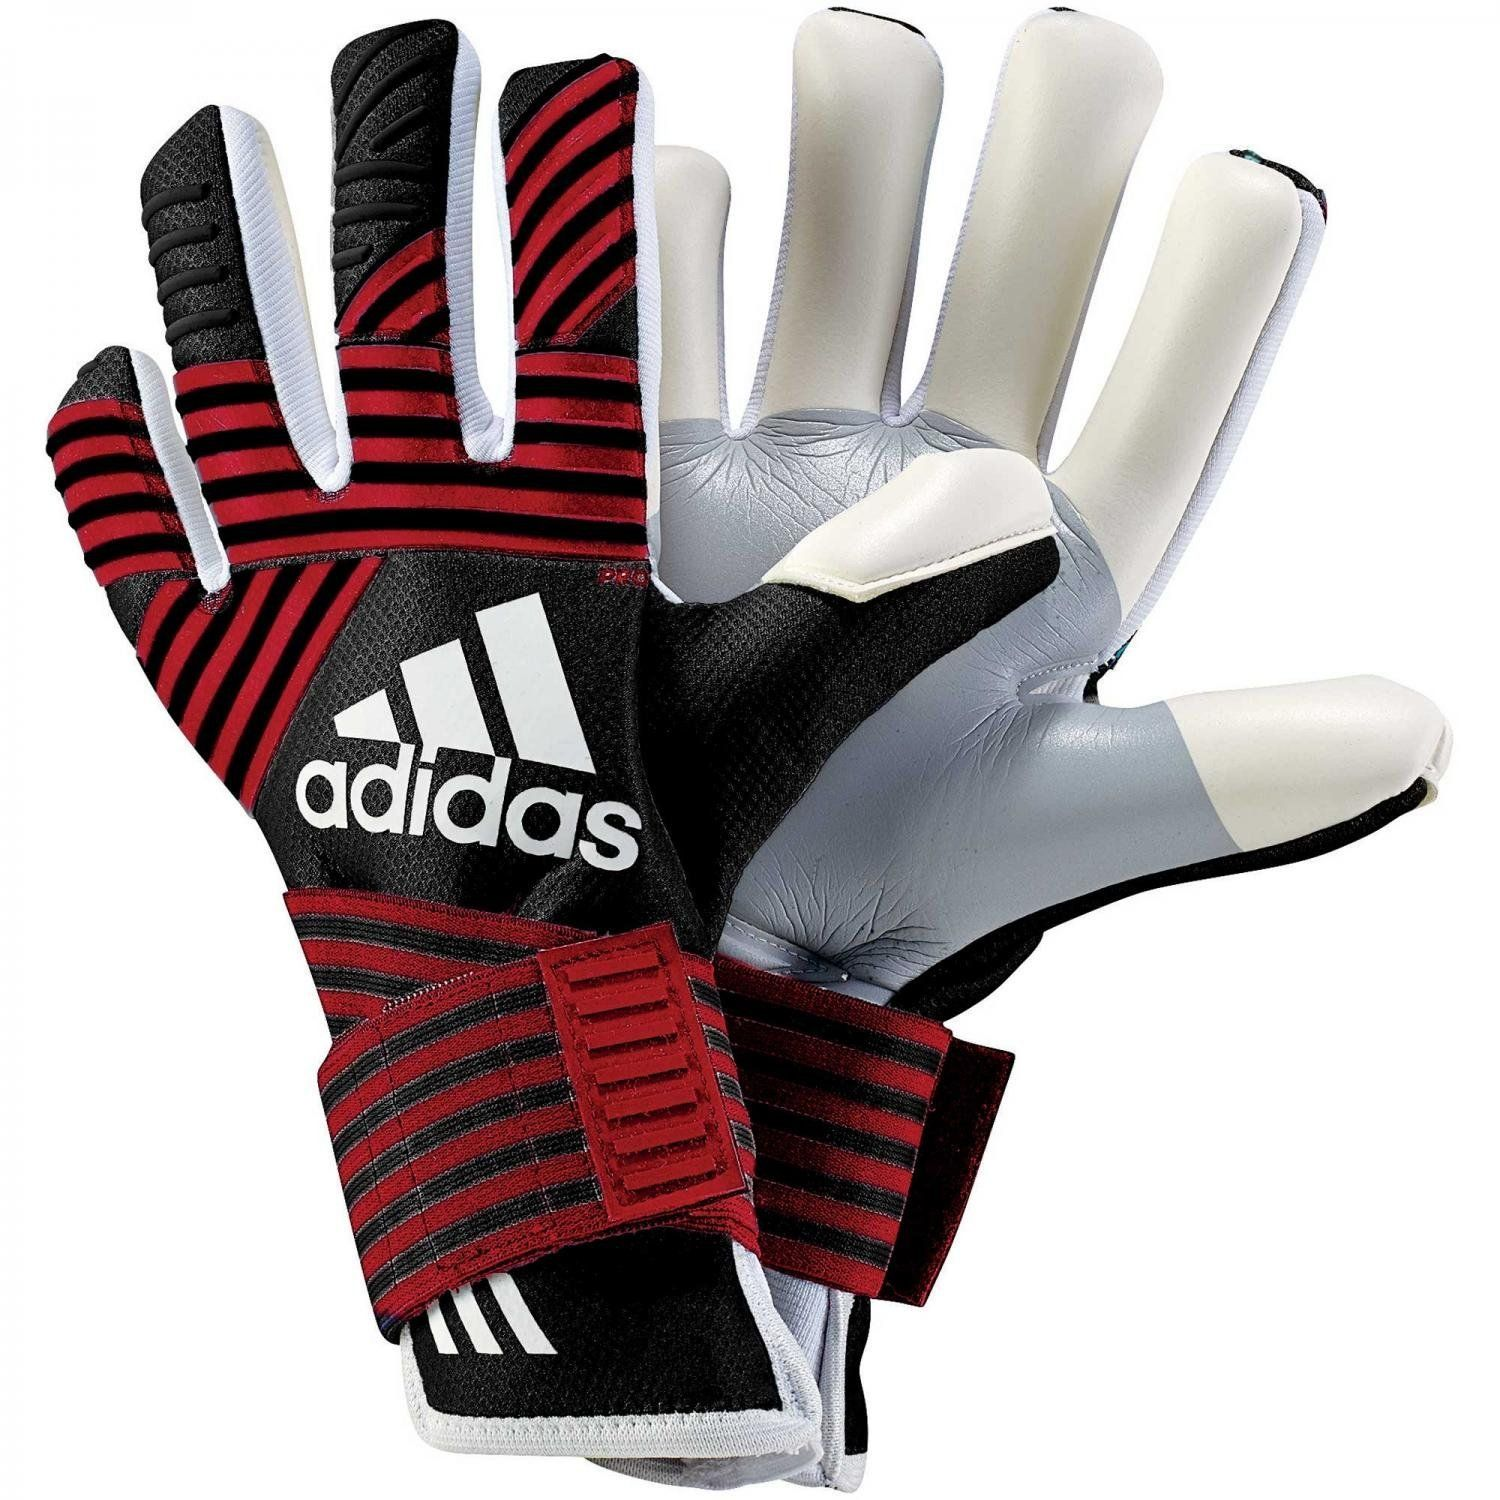 Amazon Com Adidas Ace Trans Pro Manuel Neuer Goalkeeper Gloves Size Sports Outdoors Goleiro Futebol Luvas